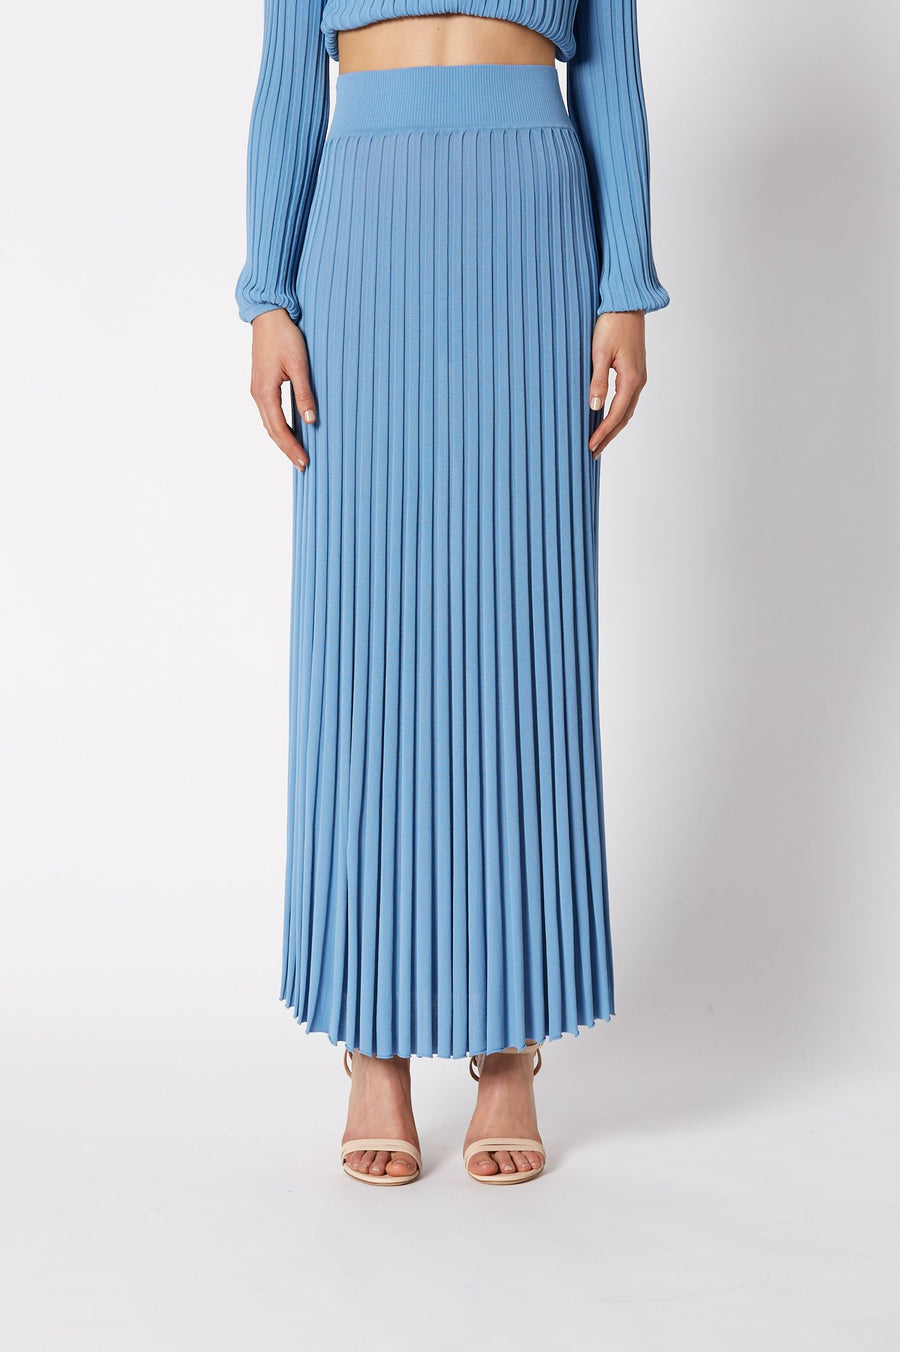 PLEATED RIB LONG SKIRT 16 PALE BLUE, Italian Pleated Rib Knit Fabric